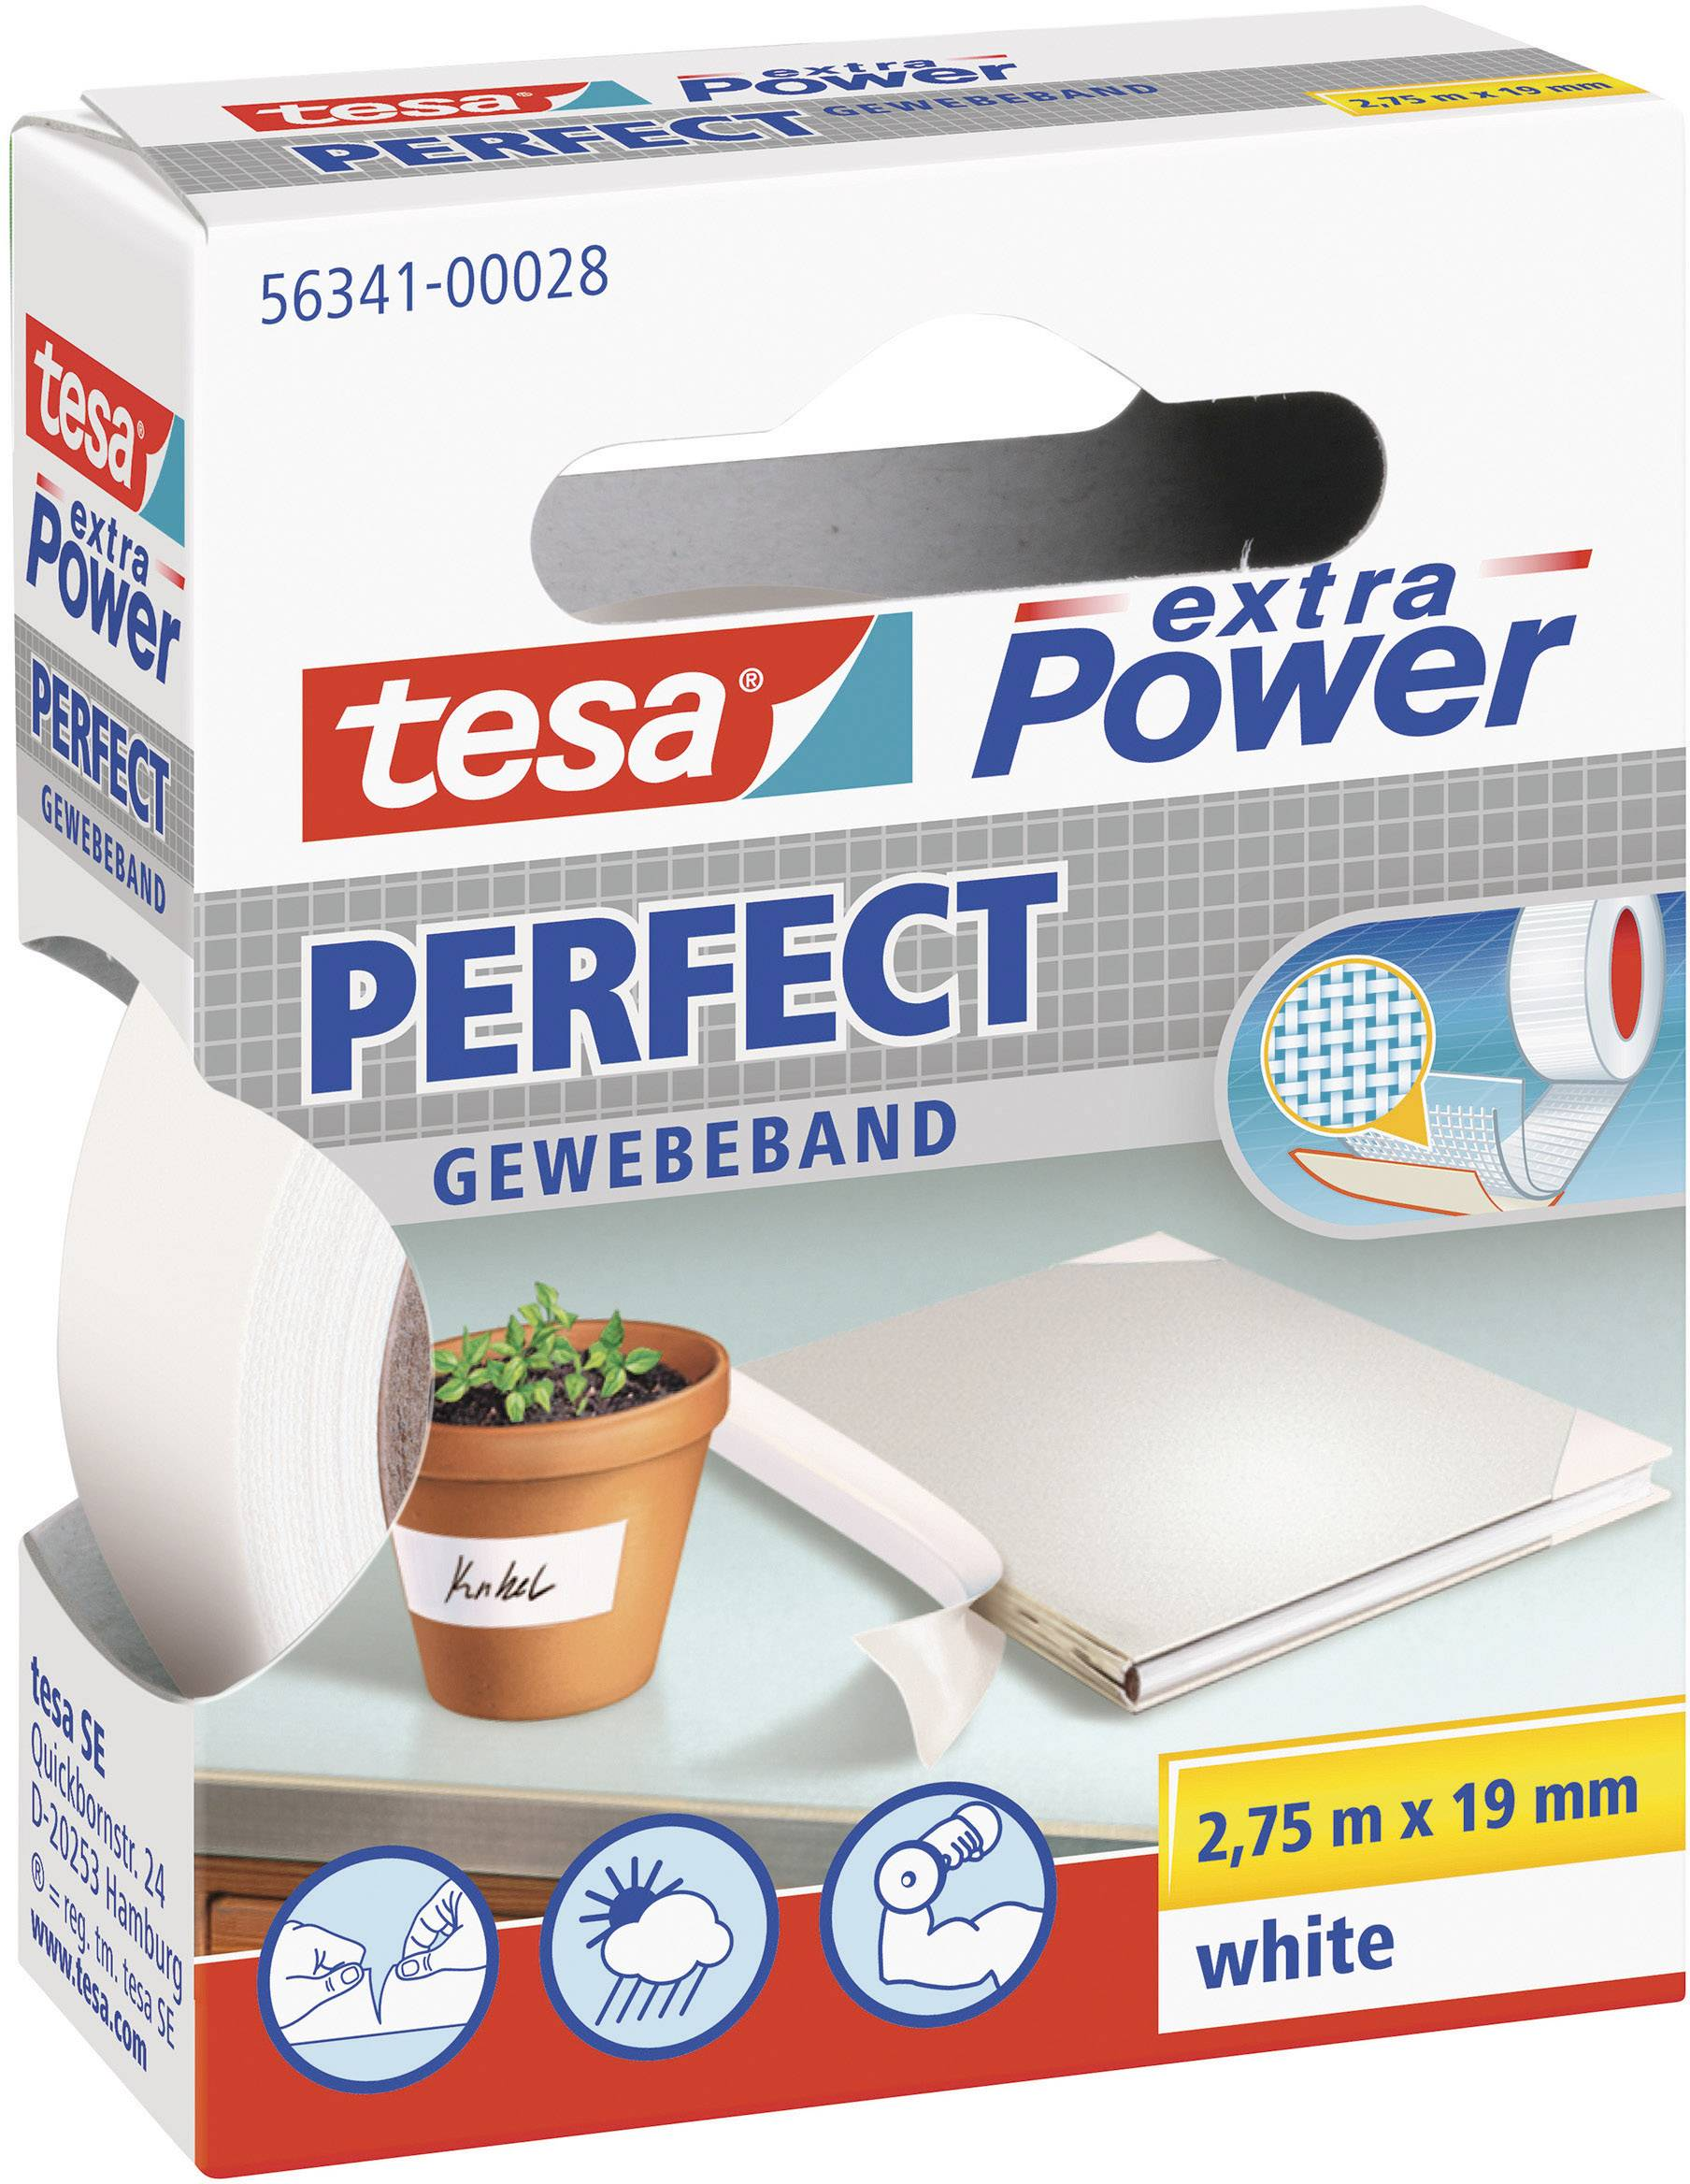 1x Komplett-Set 2,75 m x 19 mm tesa Gewebeband extra Power Perfect